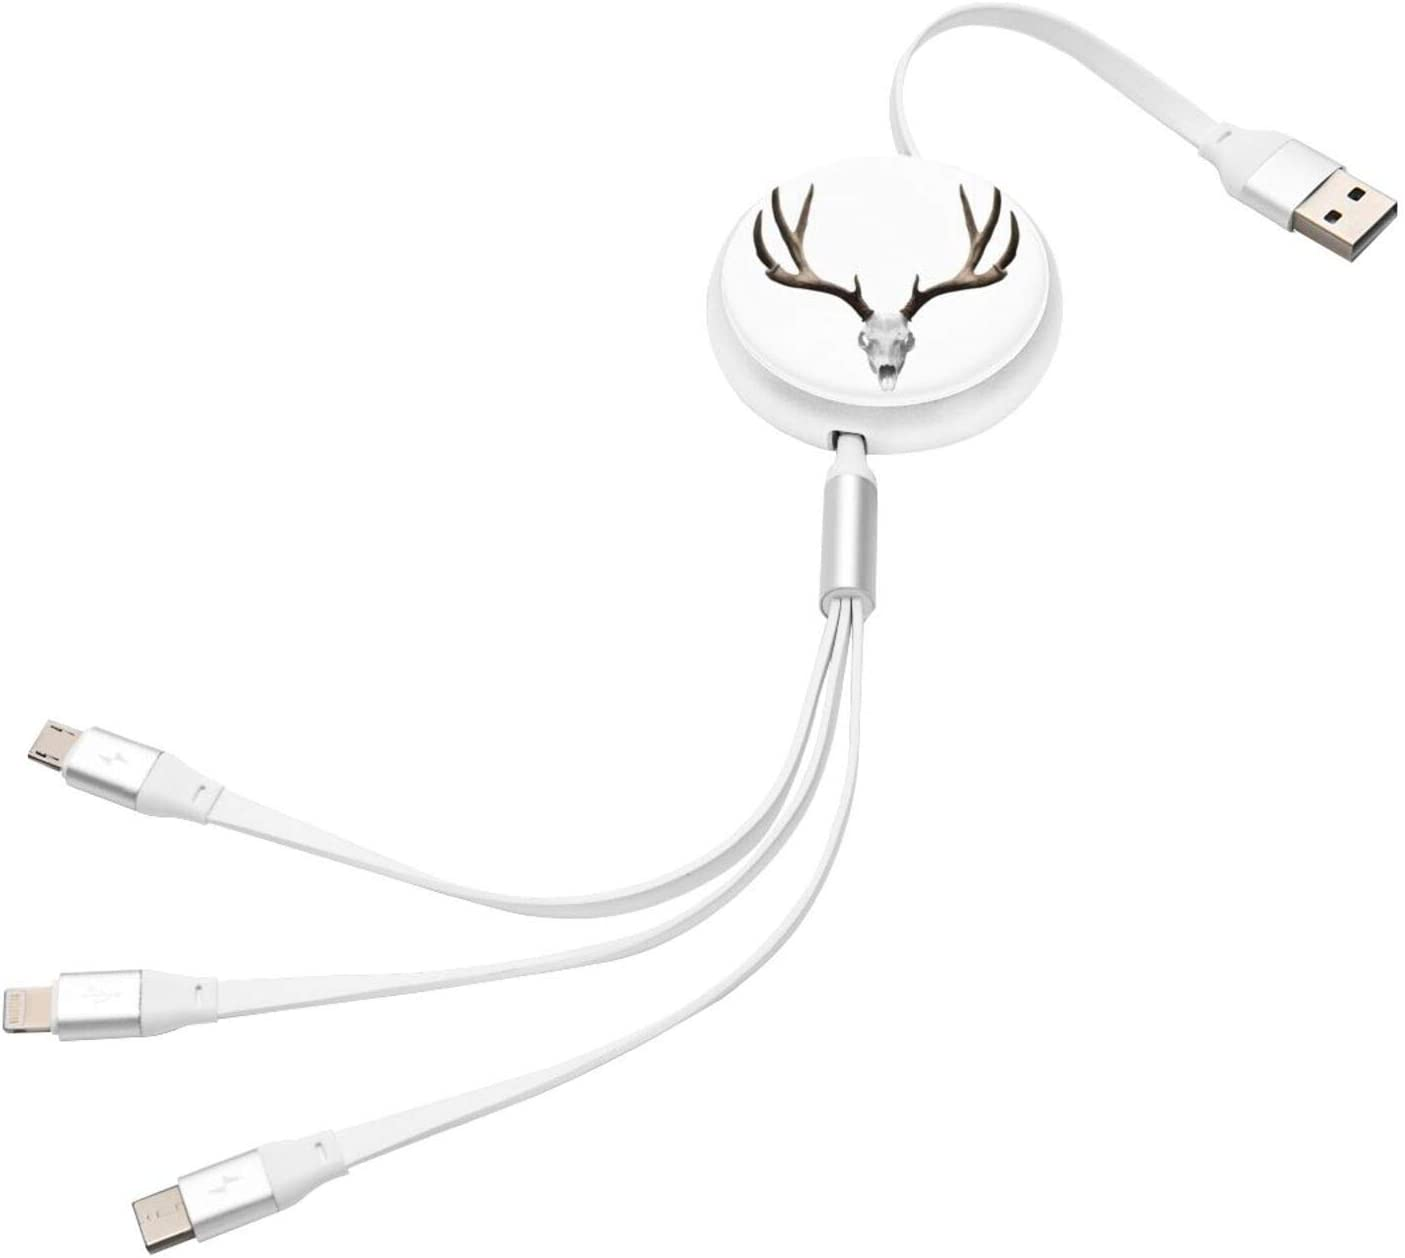 Multi Charging Cable Portable 3 in 1 A Deer Skull Skeleton Head Bone Halloween Weathered Hunter Theme Motif USB Cable USB Power Cords for Cell Phone Tablets and More Devices Charging